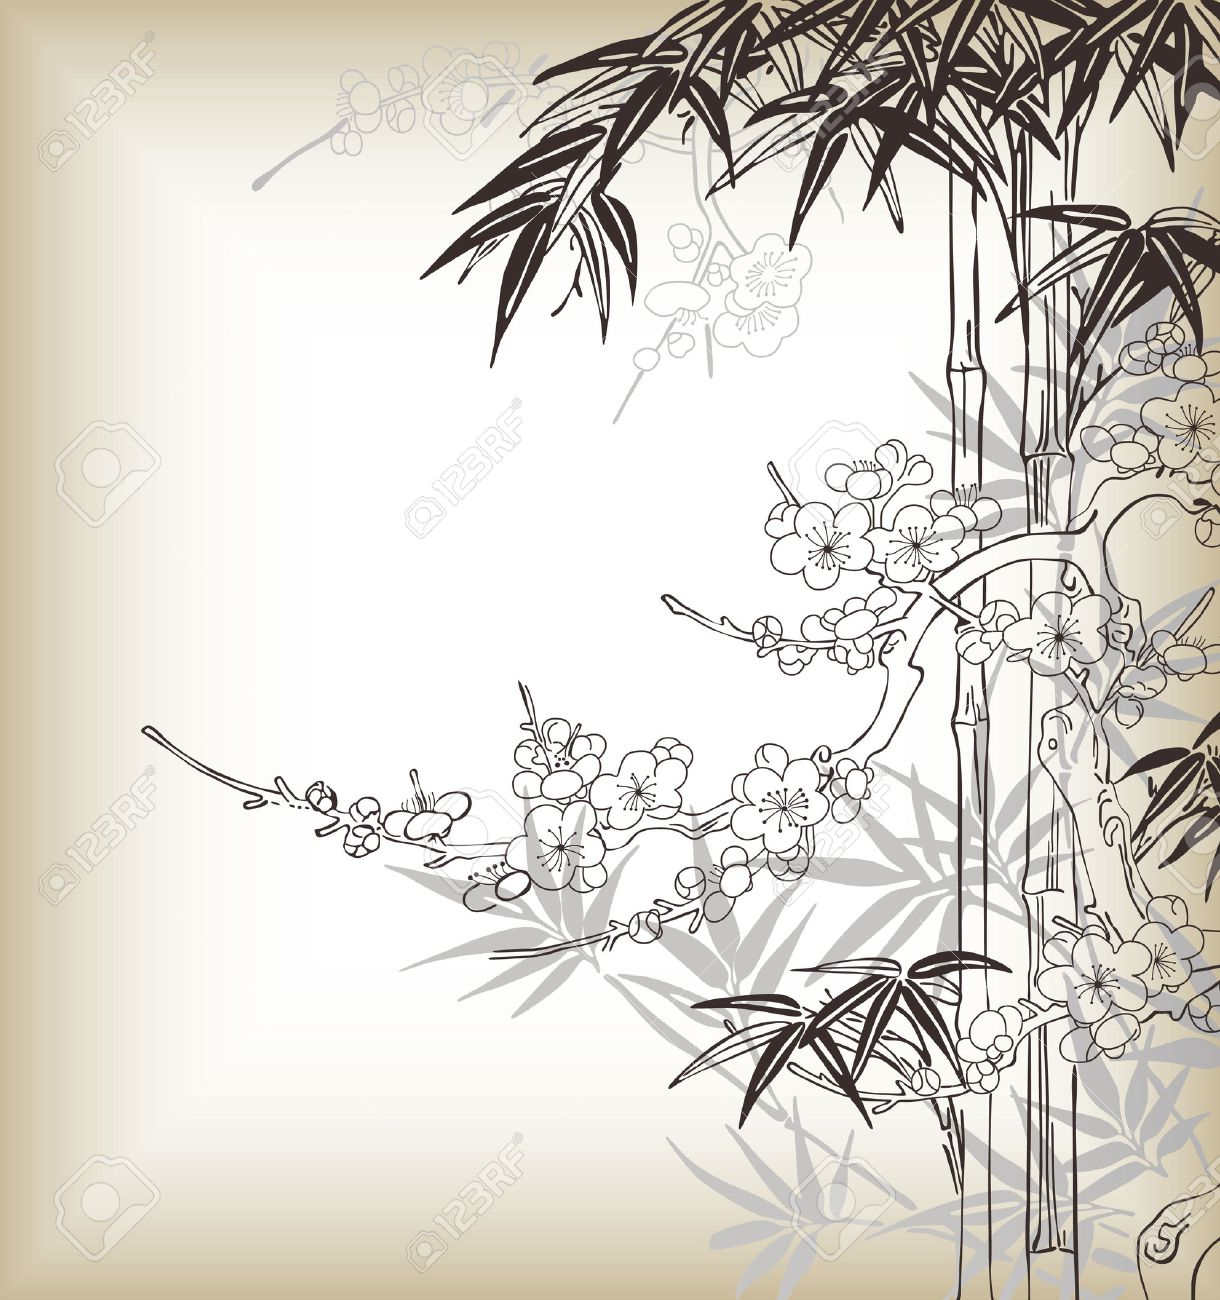 Japanese Style Tree And Bamboo Pattern Royalty Free Cliparts